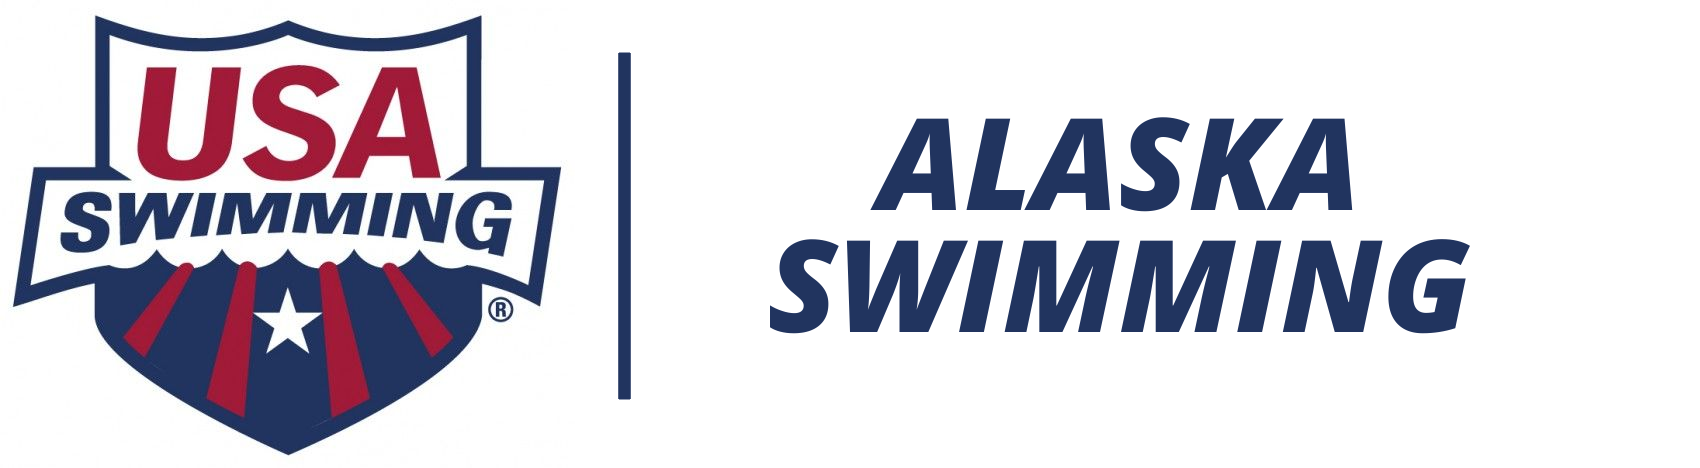 Alaska Swimming logo